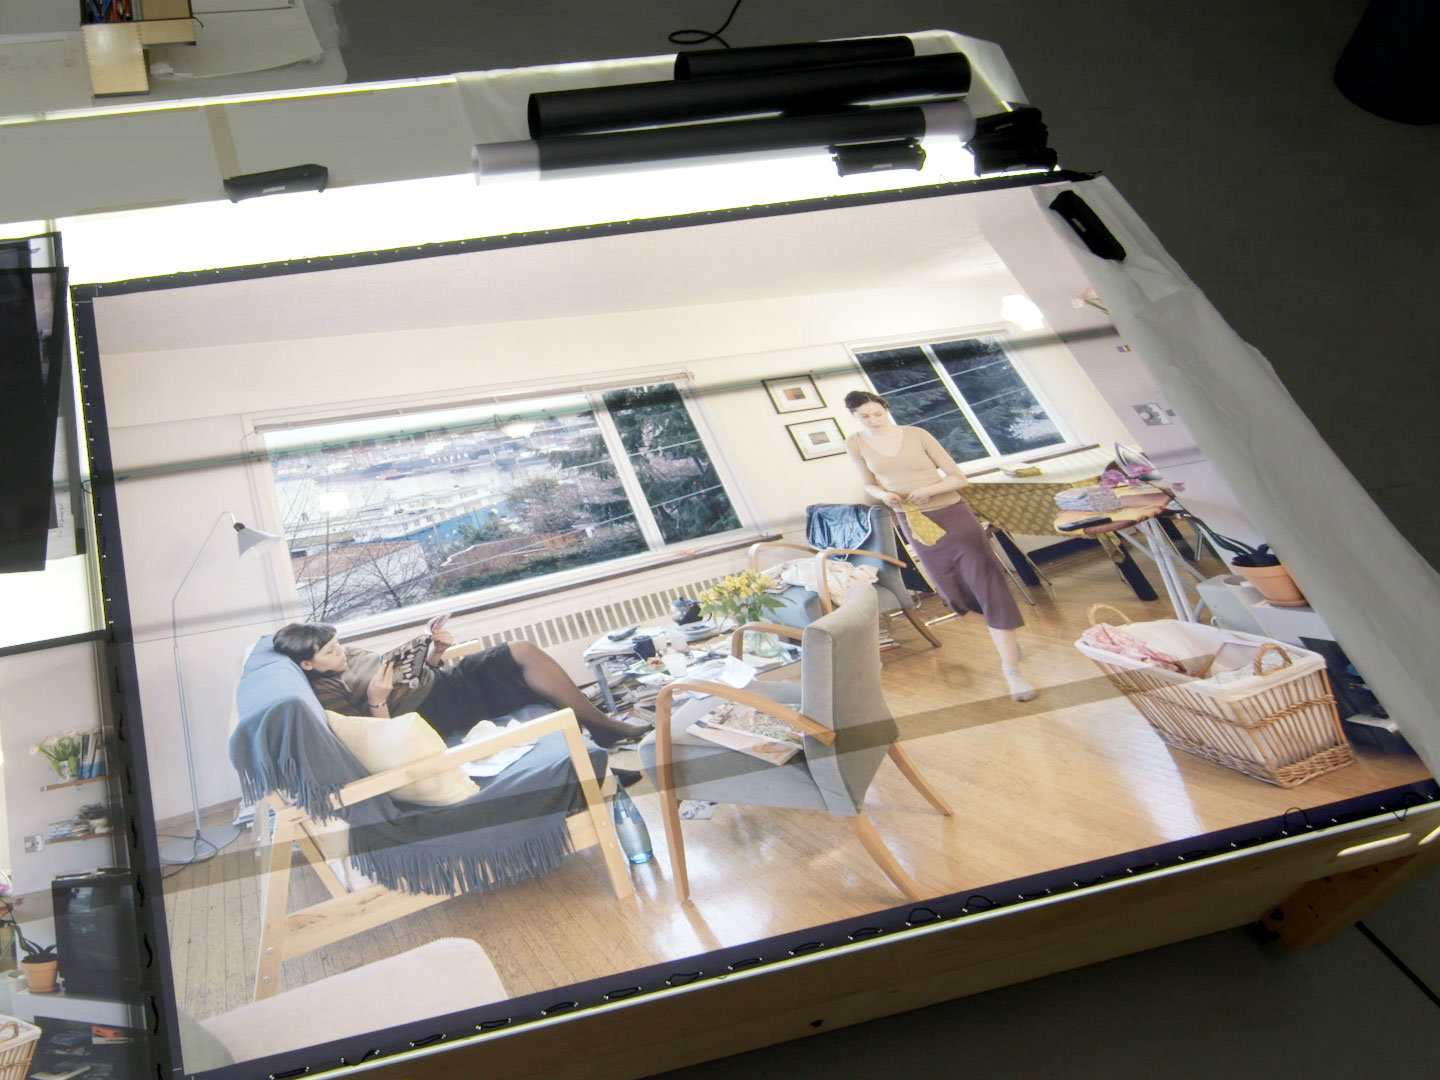 "Transparencies of #JeffWall's ""A view from an apartment"" (2004–05) on a lightbox at the artist's Vancouver studio, as featured in a preview on art21.org from #ART21's upcoming new broadcast season. Production still from ART21's series Art in the Twenty-First Century, Season 8, 2016. © ART21, Inc. 2016."